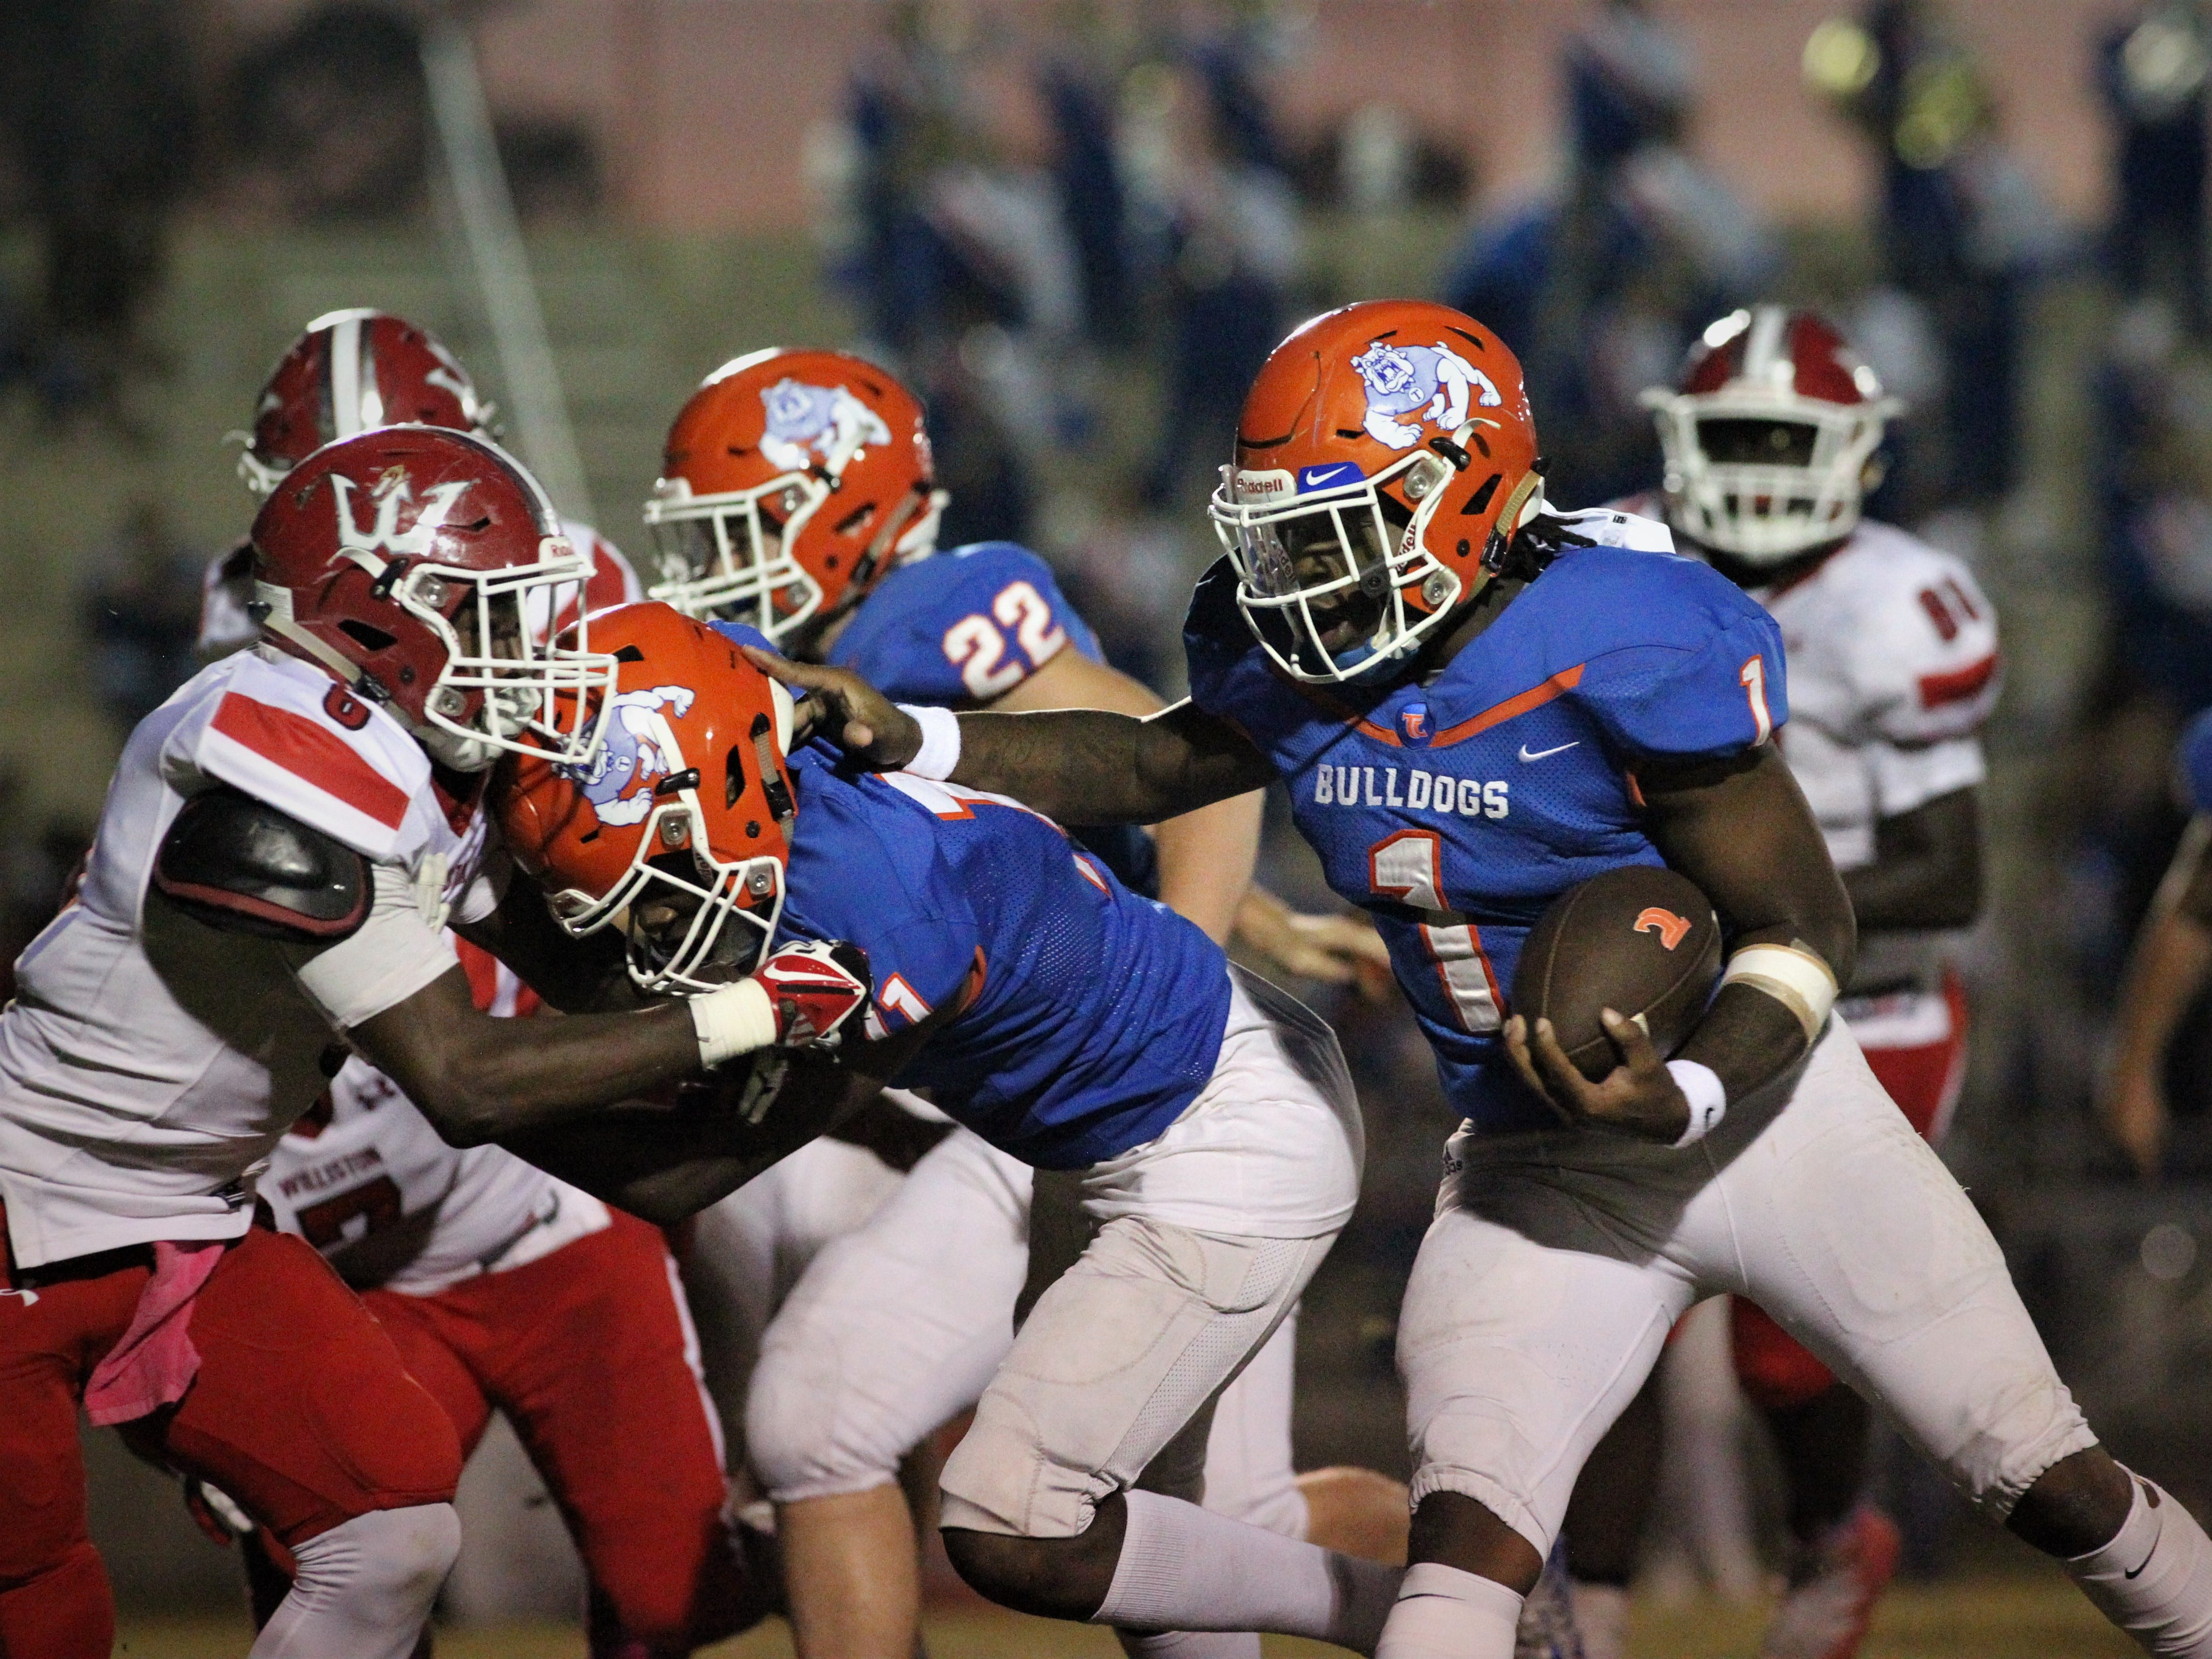 Taylor County quarterback Da'corian Bellamy runs for a big gain as the Taylor County Bulldogs host the Williston Red Devils in a high school football game on Friday, Oct. 12, 2018.